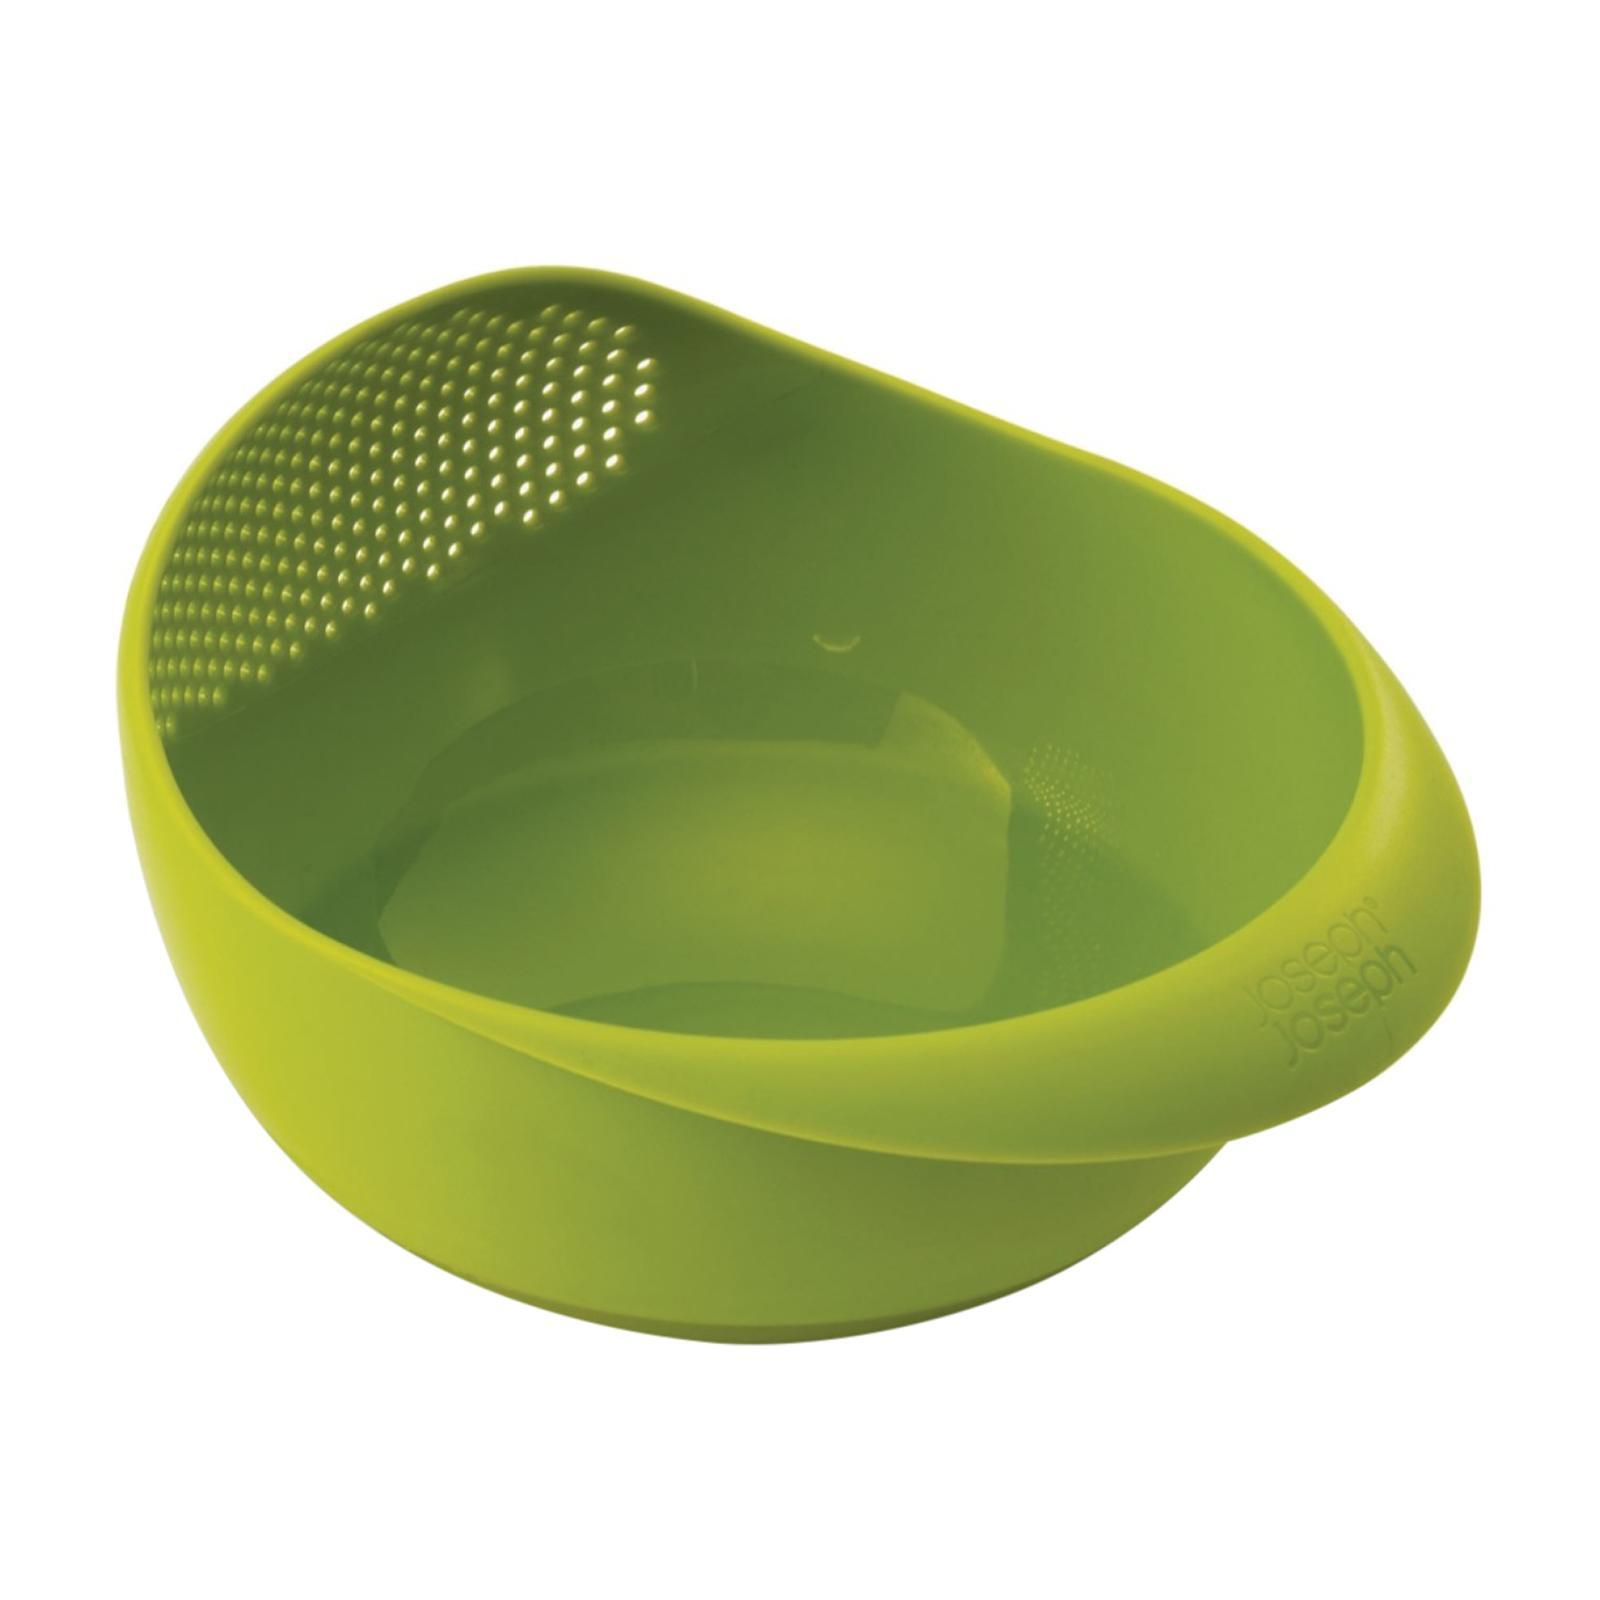 Joseph Joseph Prep And Serve Multi-Function Bowl With Colander - Green